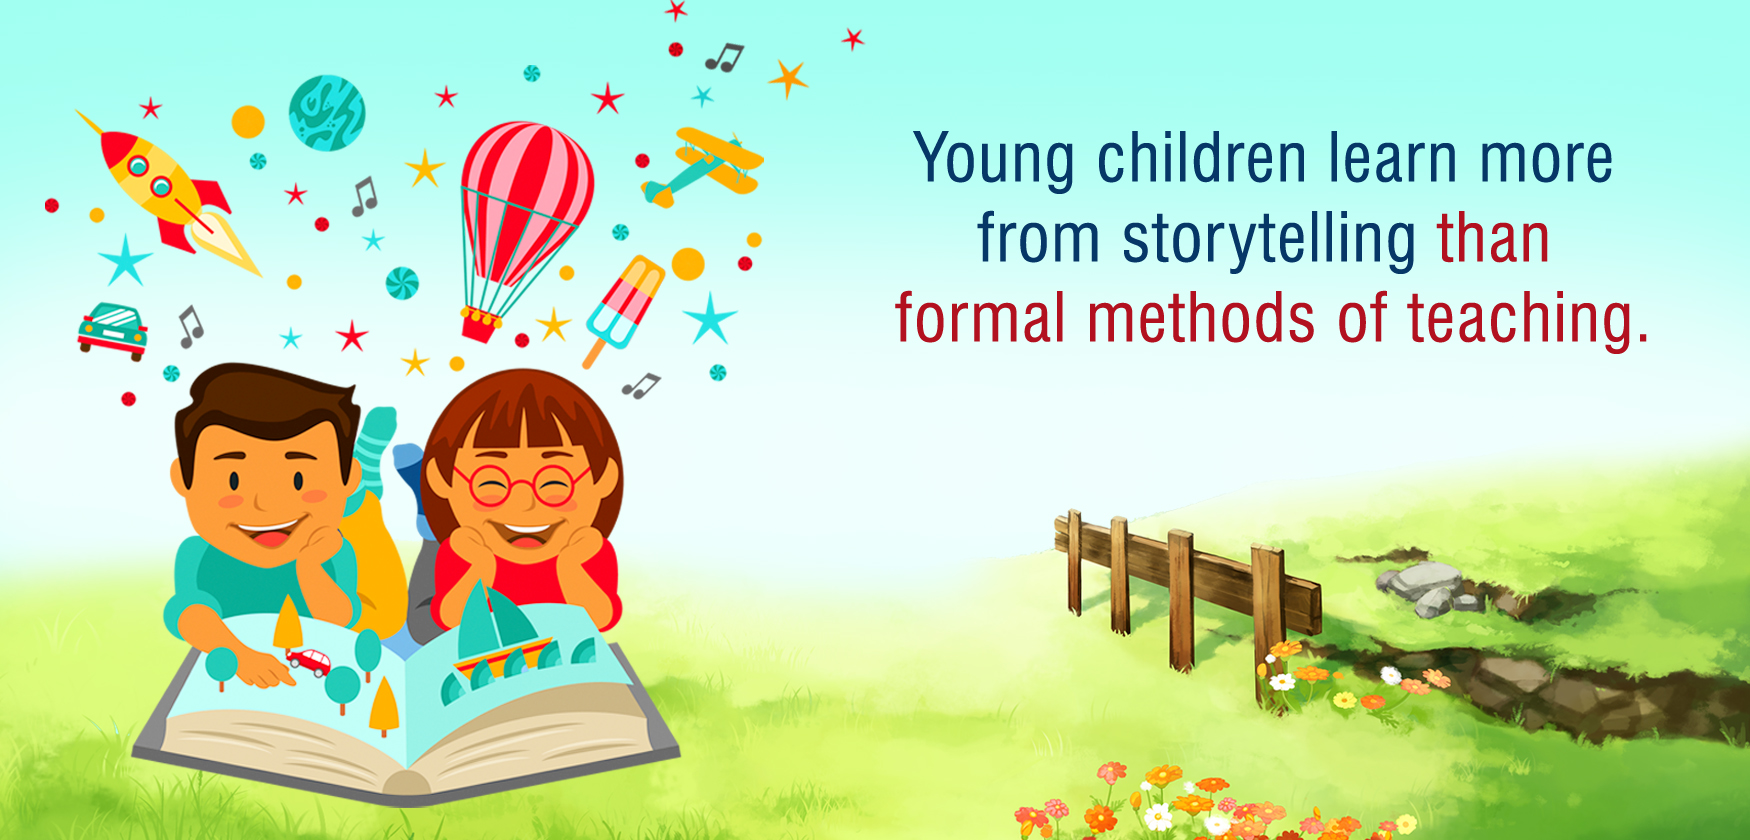 Young children learn more from storytelling than formal methods of teaching